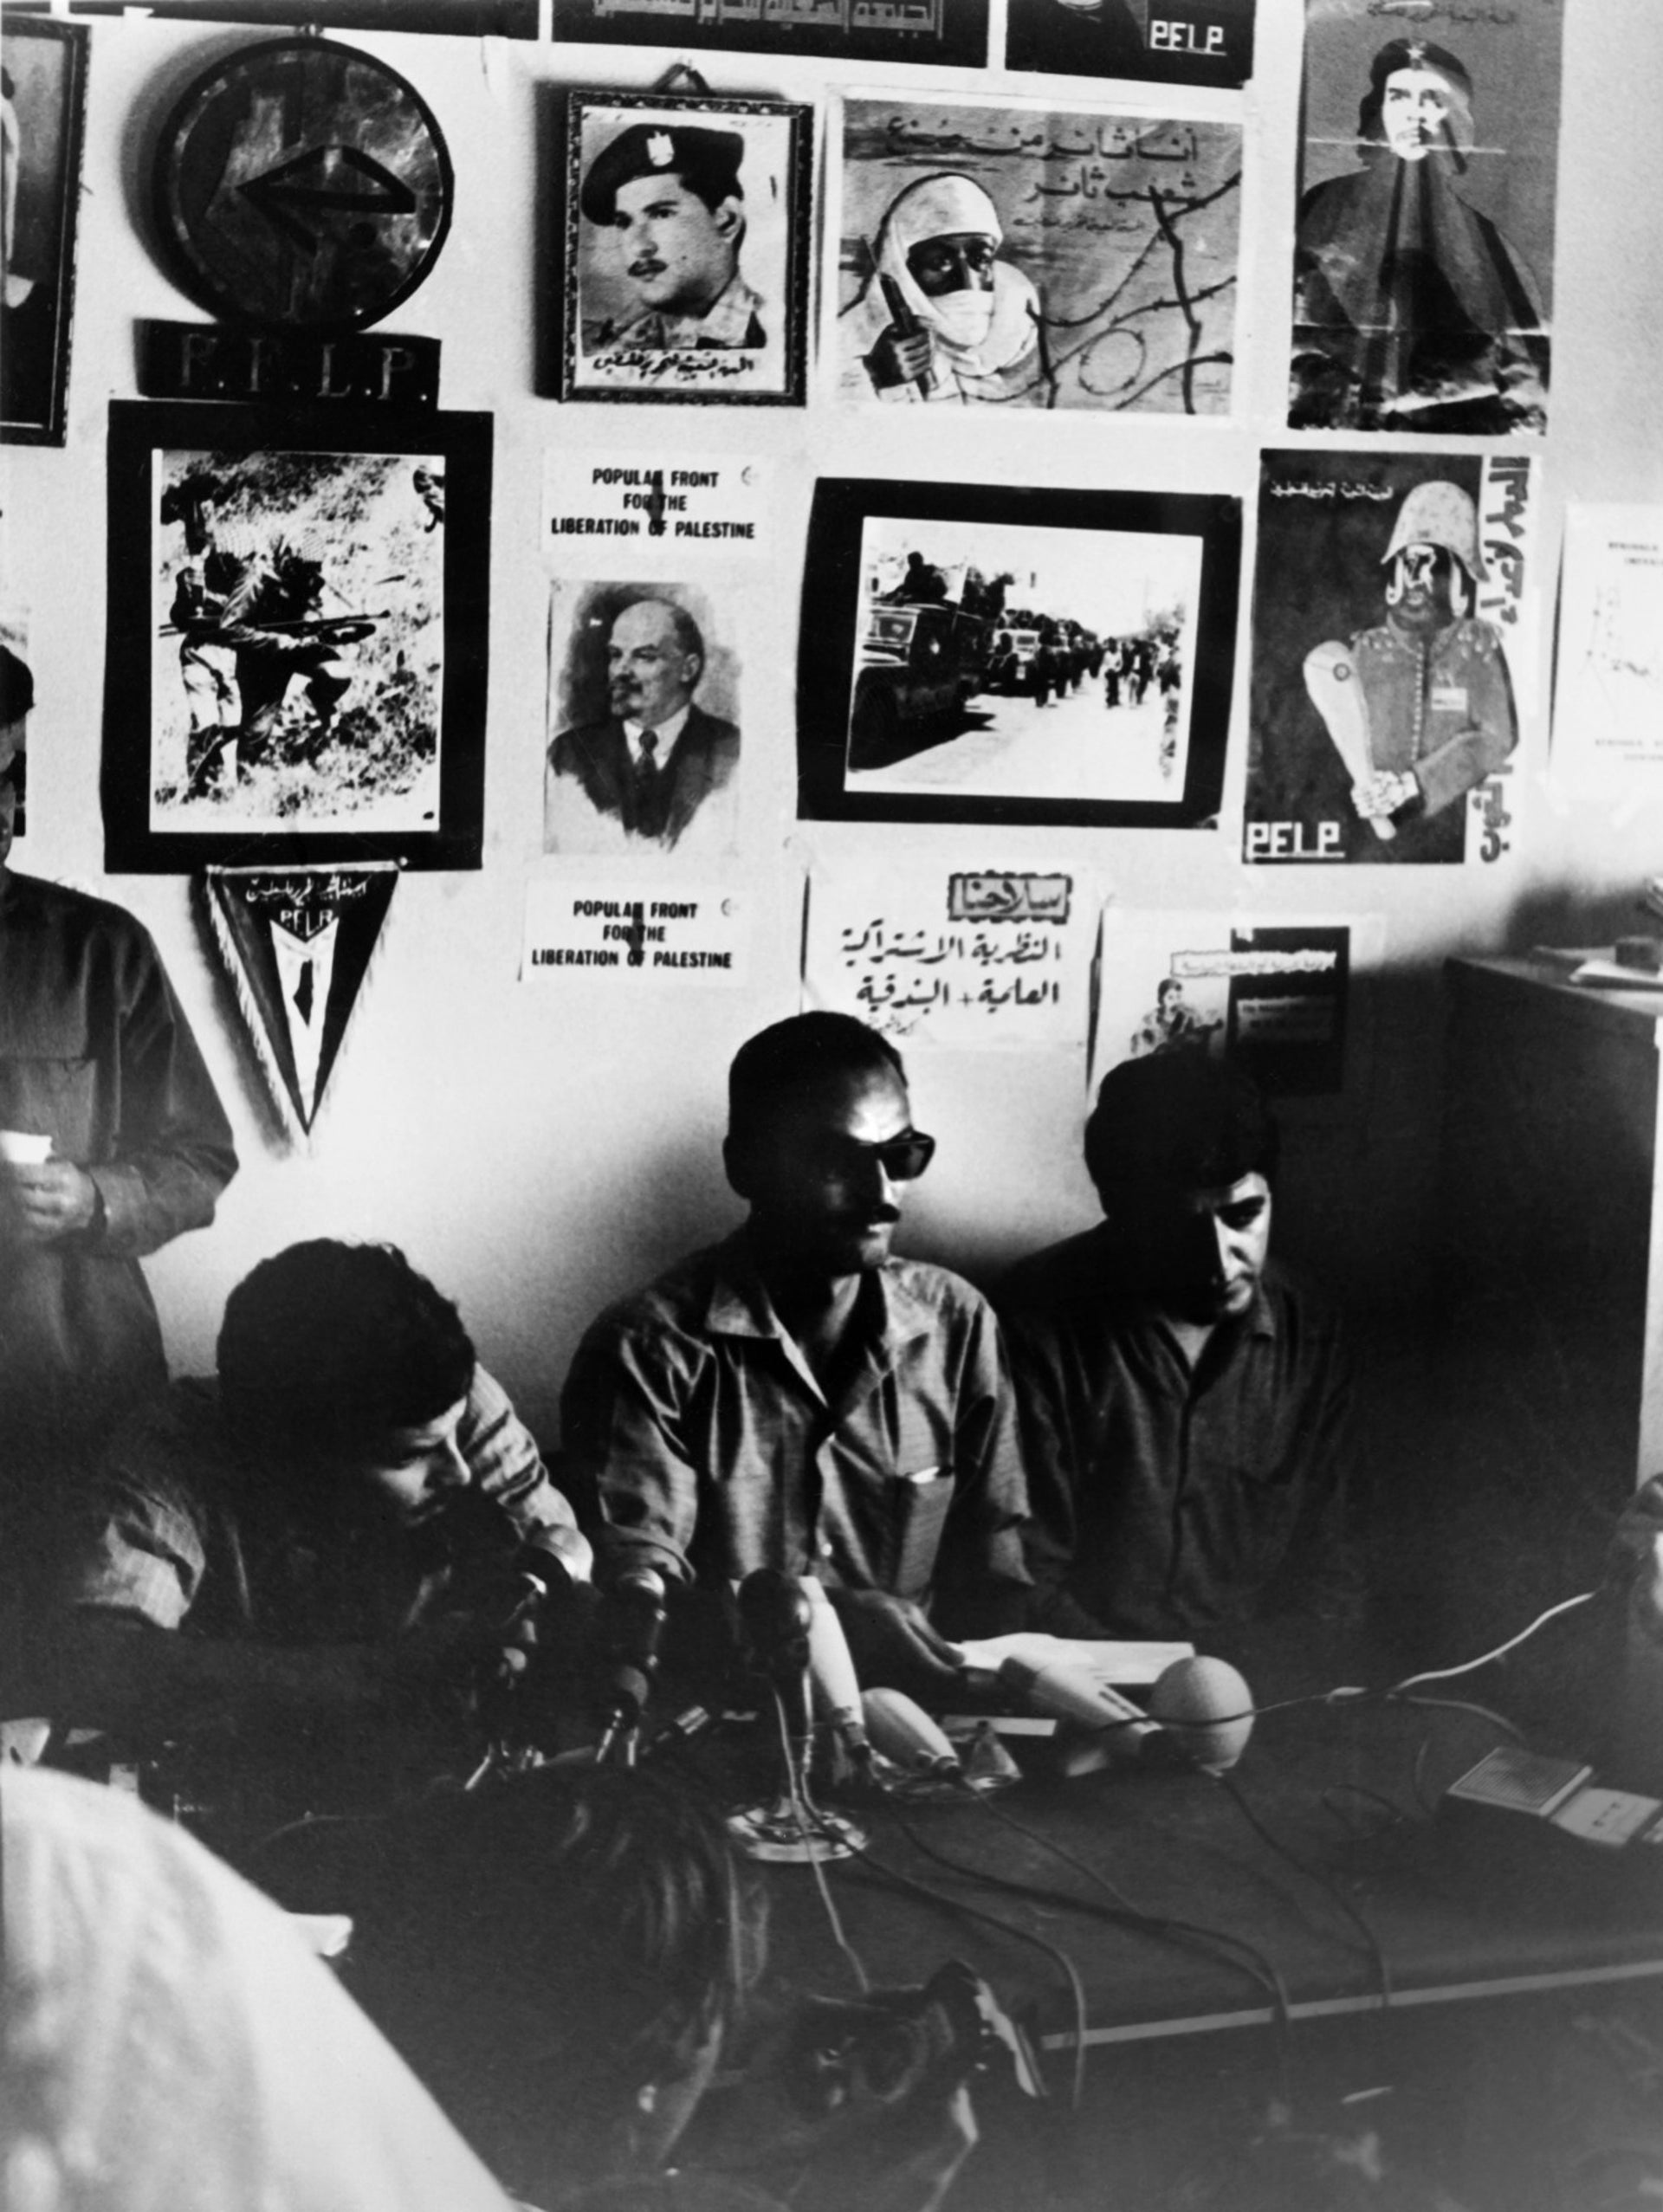 Members of the Popular Front for the Liberation of Palestine (PFLP) of George Habash delivers a press conference on September 14, 1970 after PFLP activists hijacked four planes.